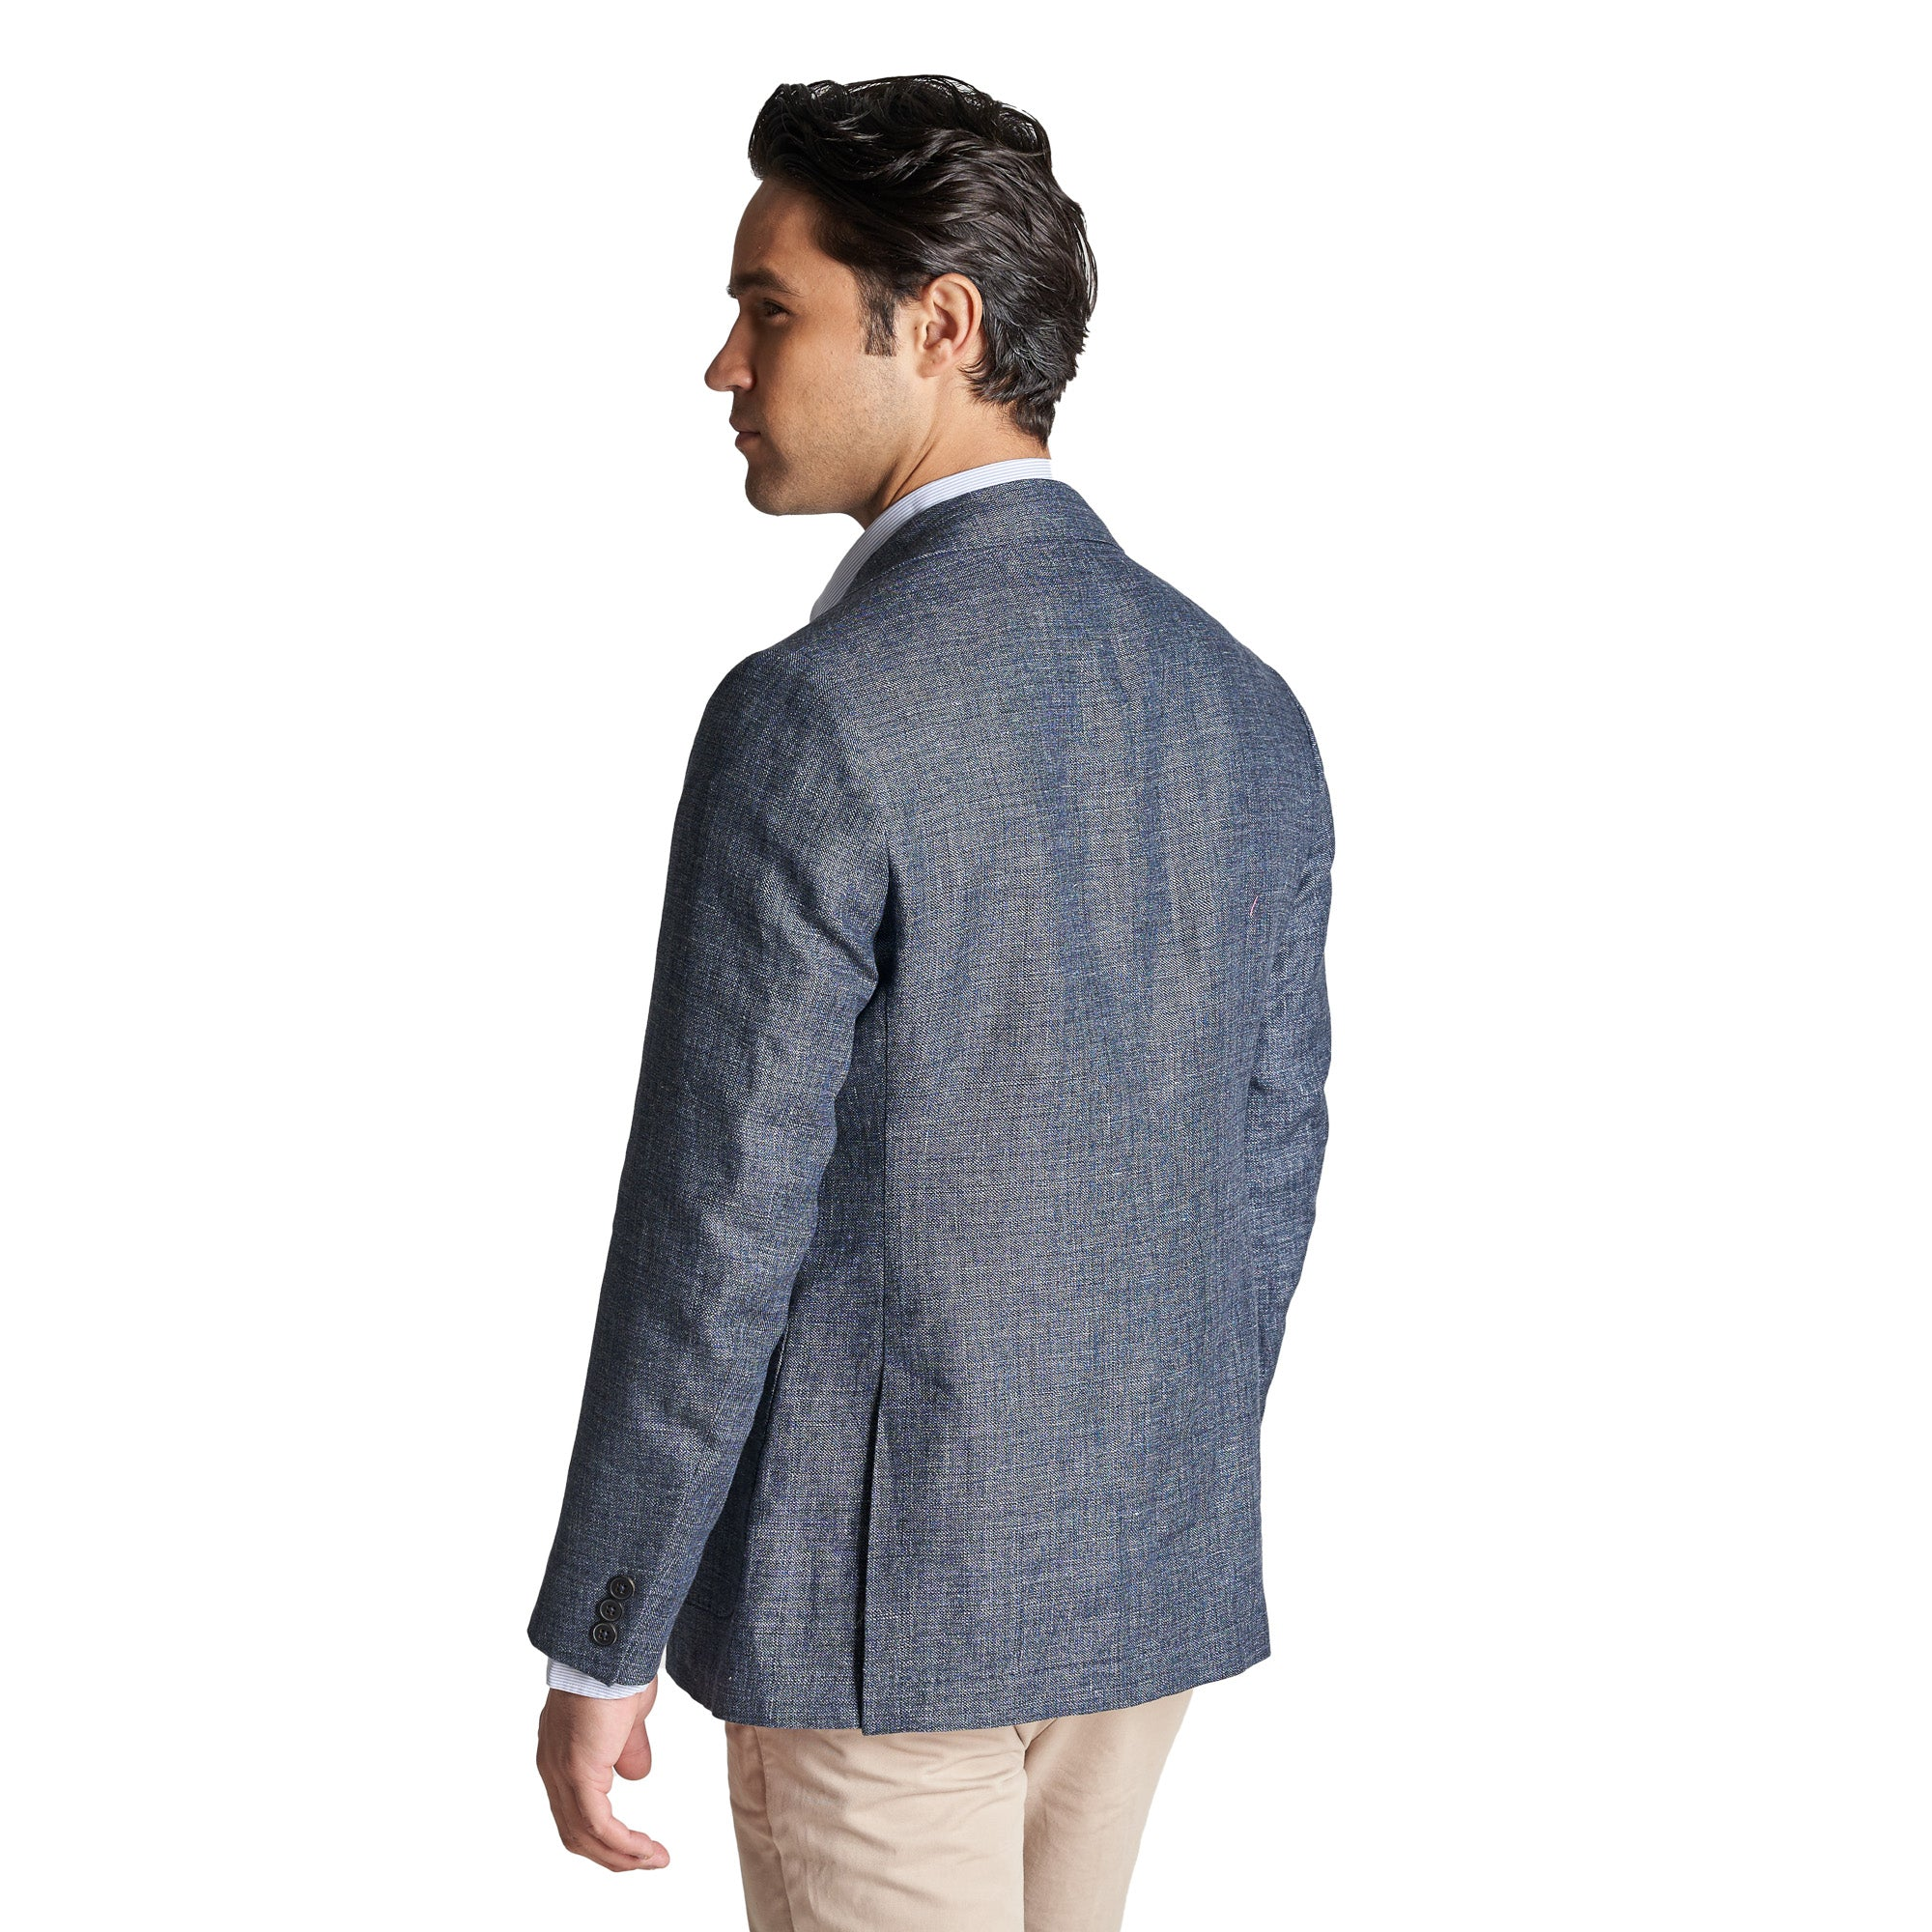 Unstructured Linen Jackets - Navy